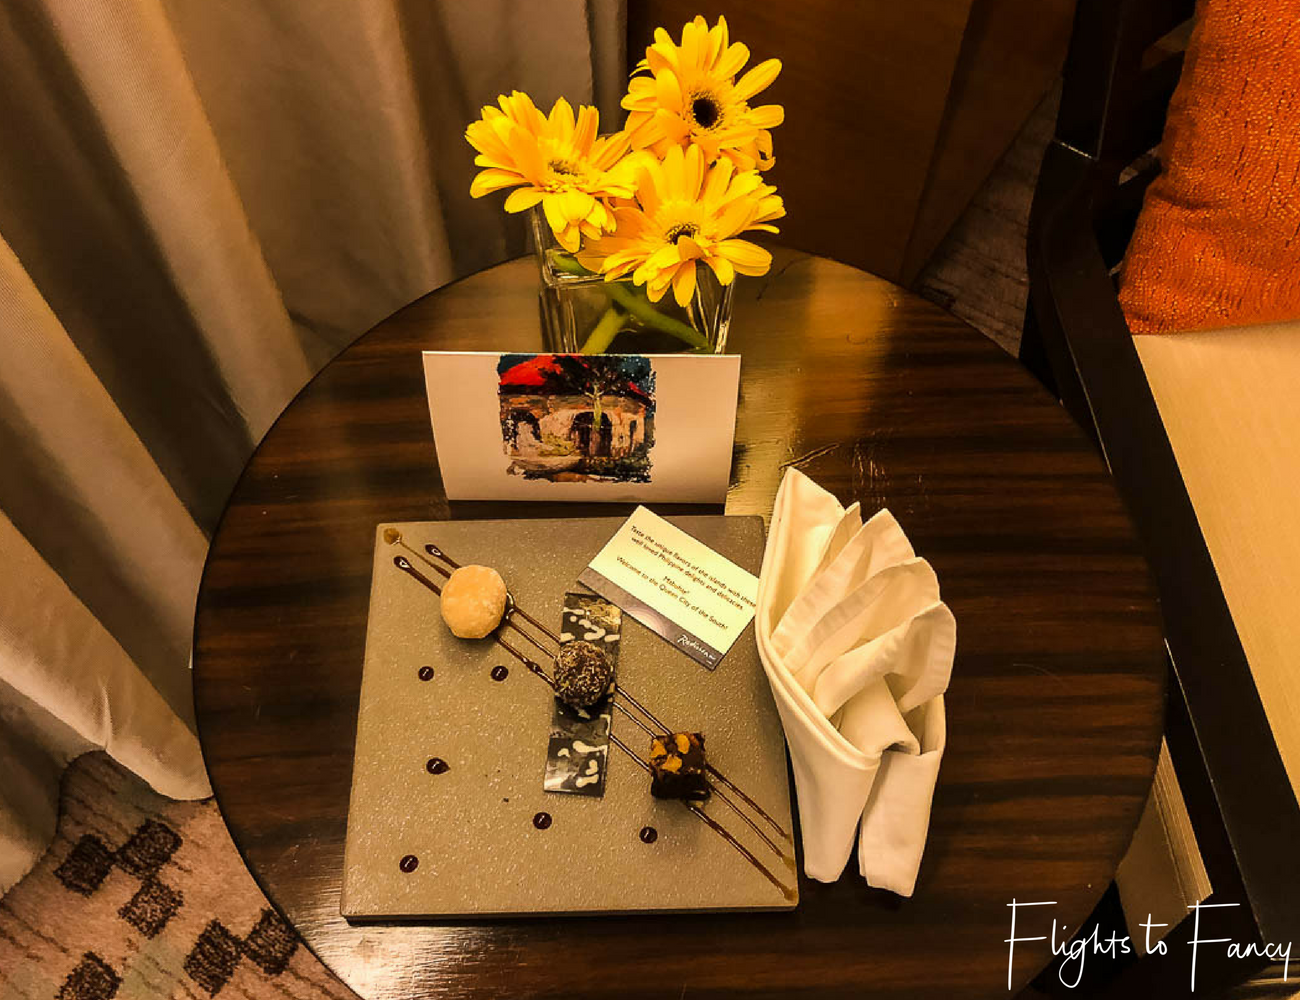 Flights To Fancy @ Radisson Blu Cebu City. Sweet treats